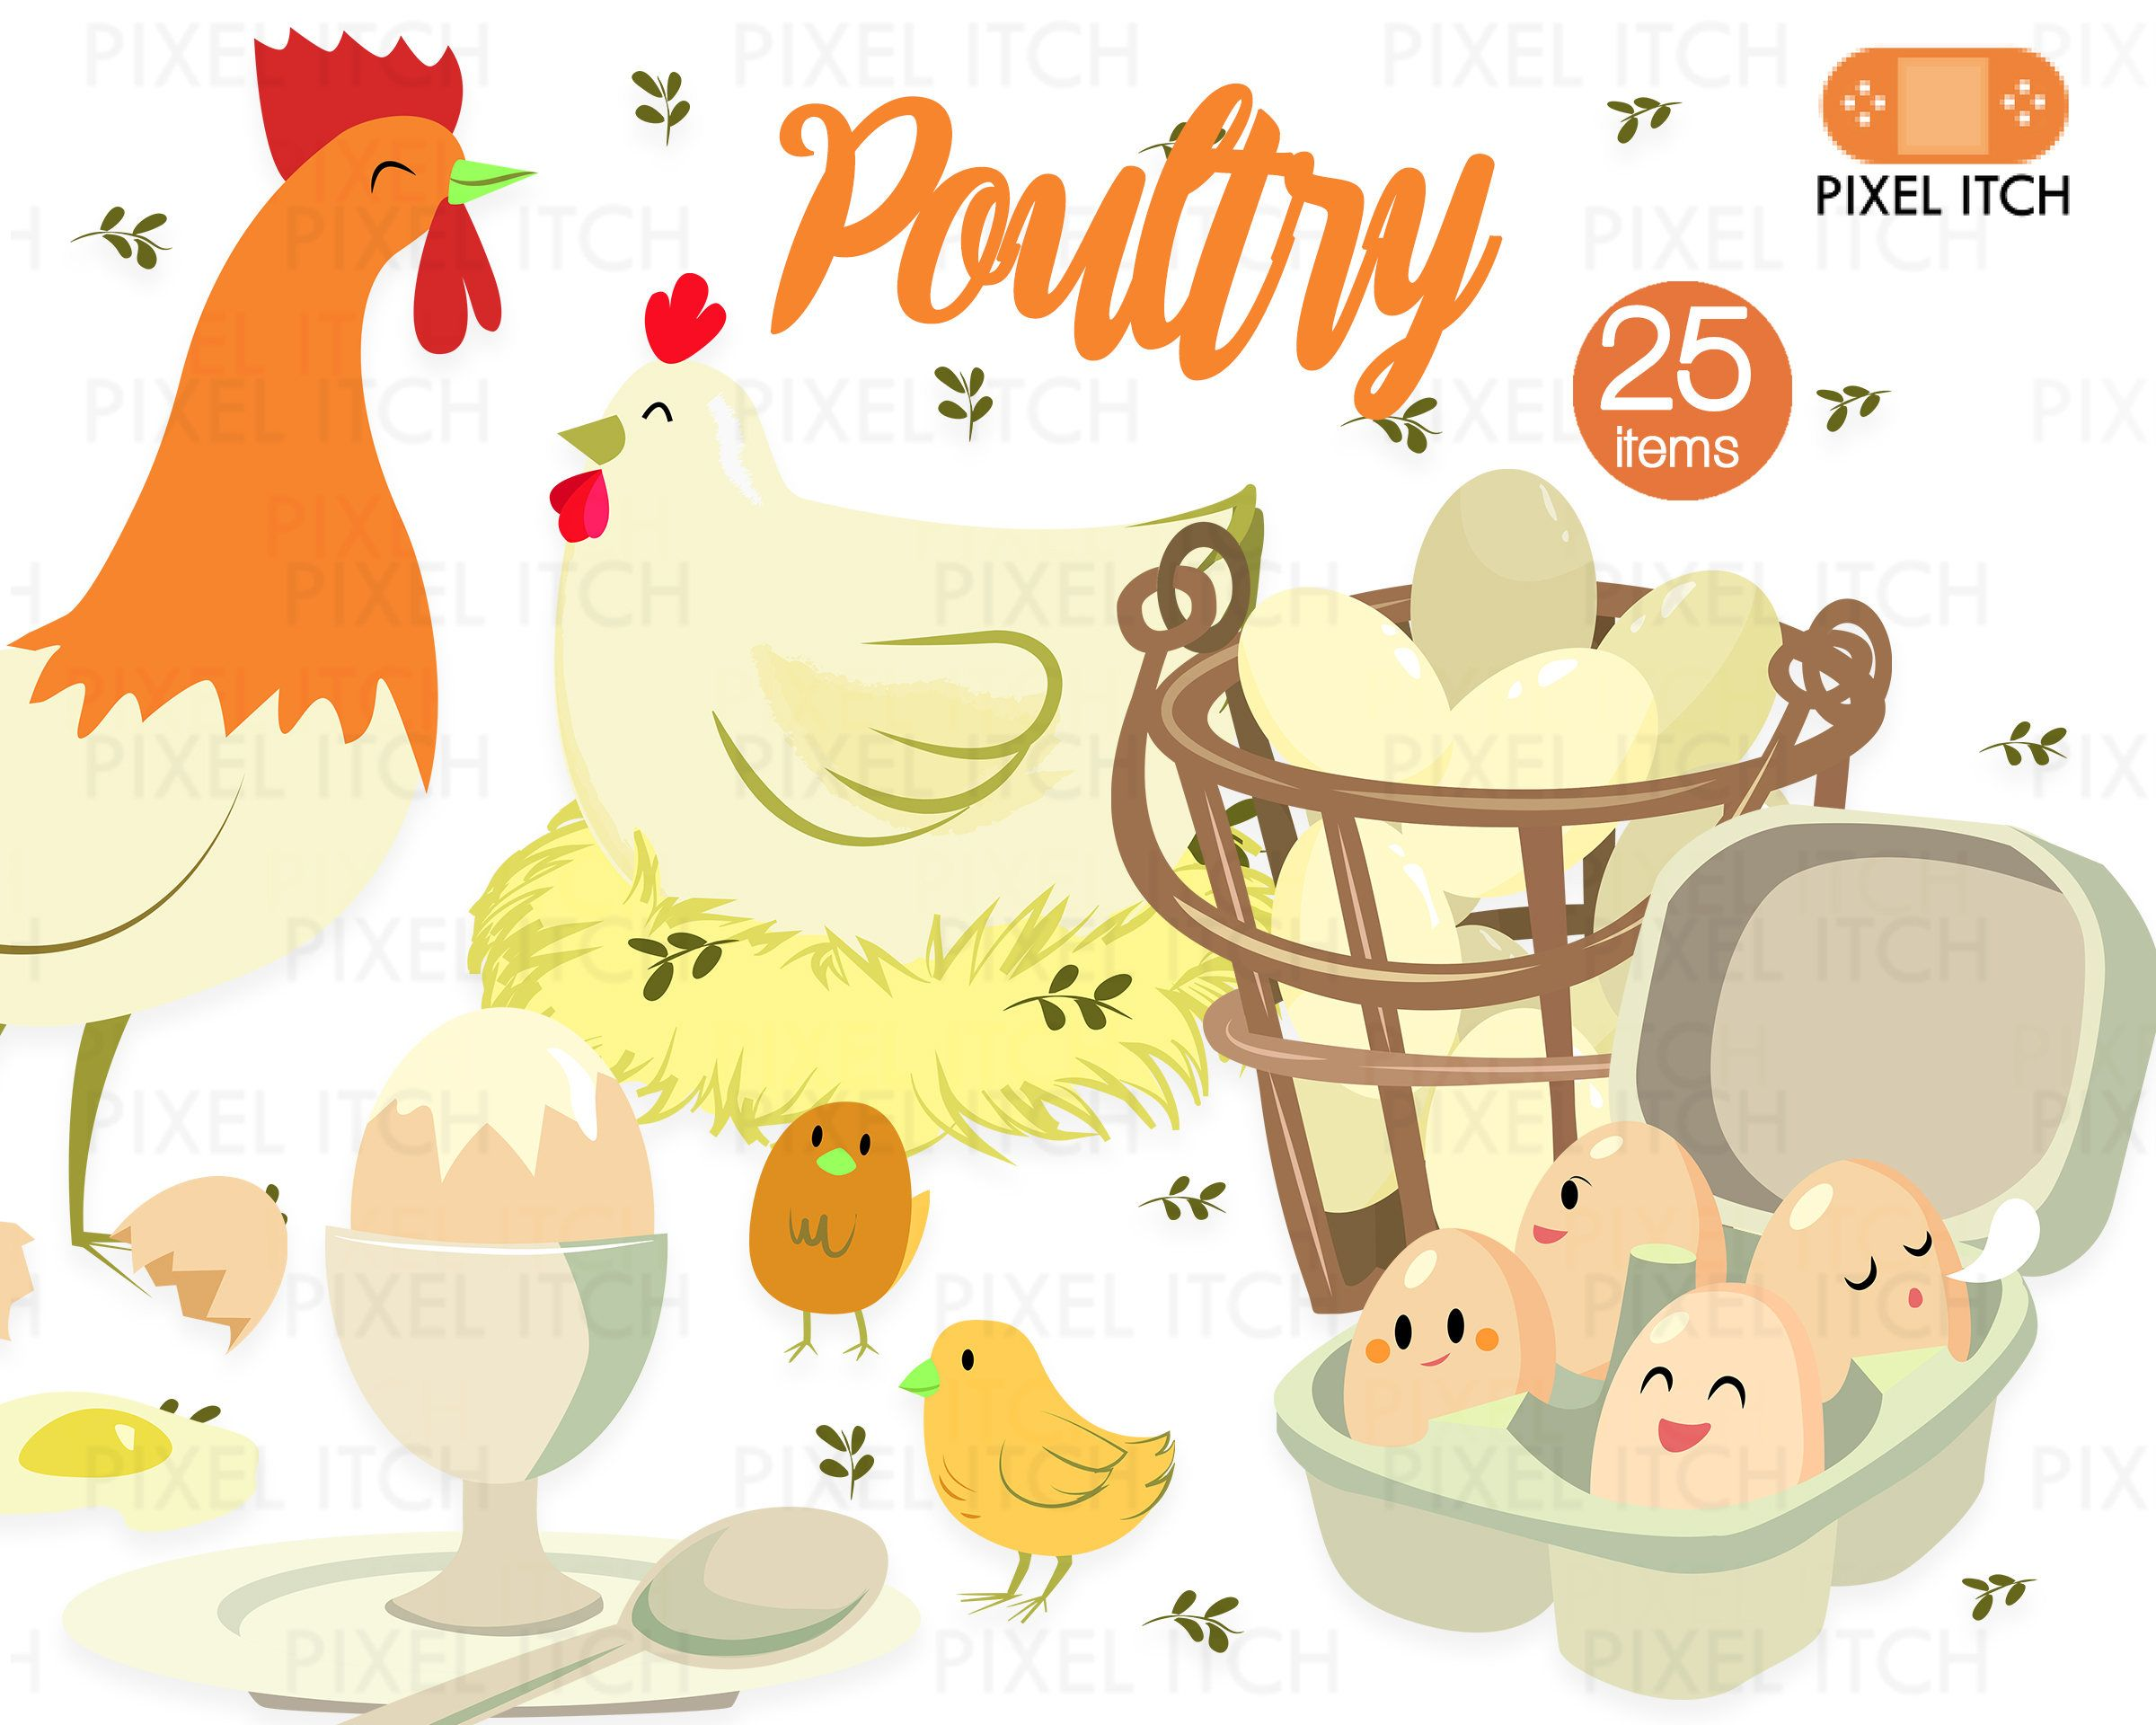 hight resolution of poultry illustration farm clipart farm produce chicken clipart rooster clipart nest clipart egg basket clipart cooking egg dishes recipe by